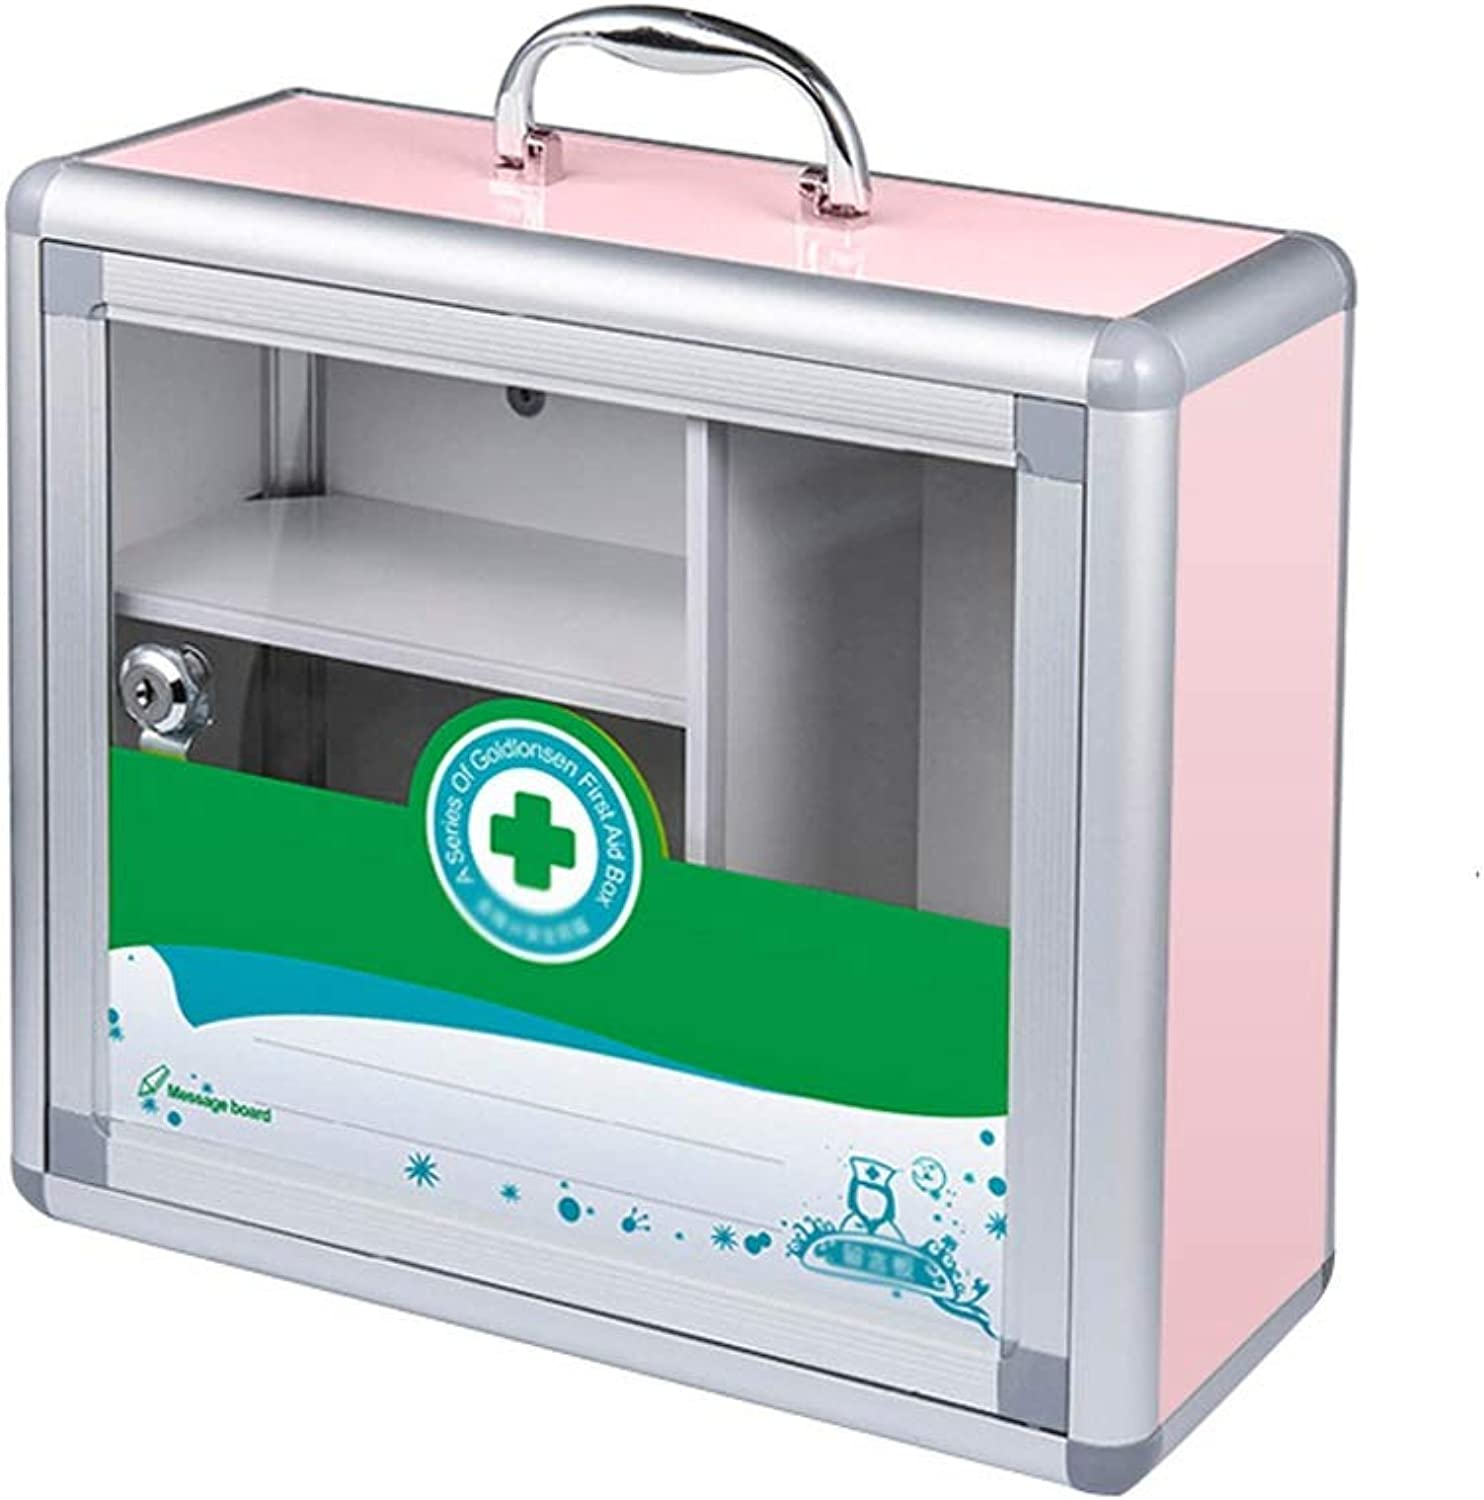 LCSHAN Convenient Household Medicine Box Wall-Mounted Medicine Emergency Aluminum Storage Box (color   Pink, Size   M)